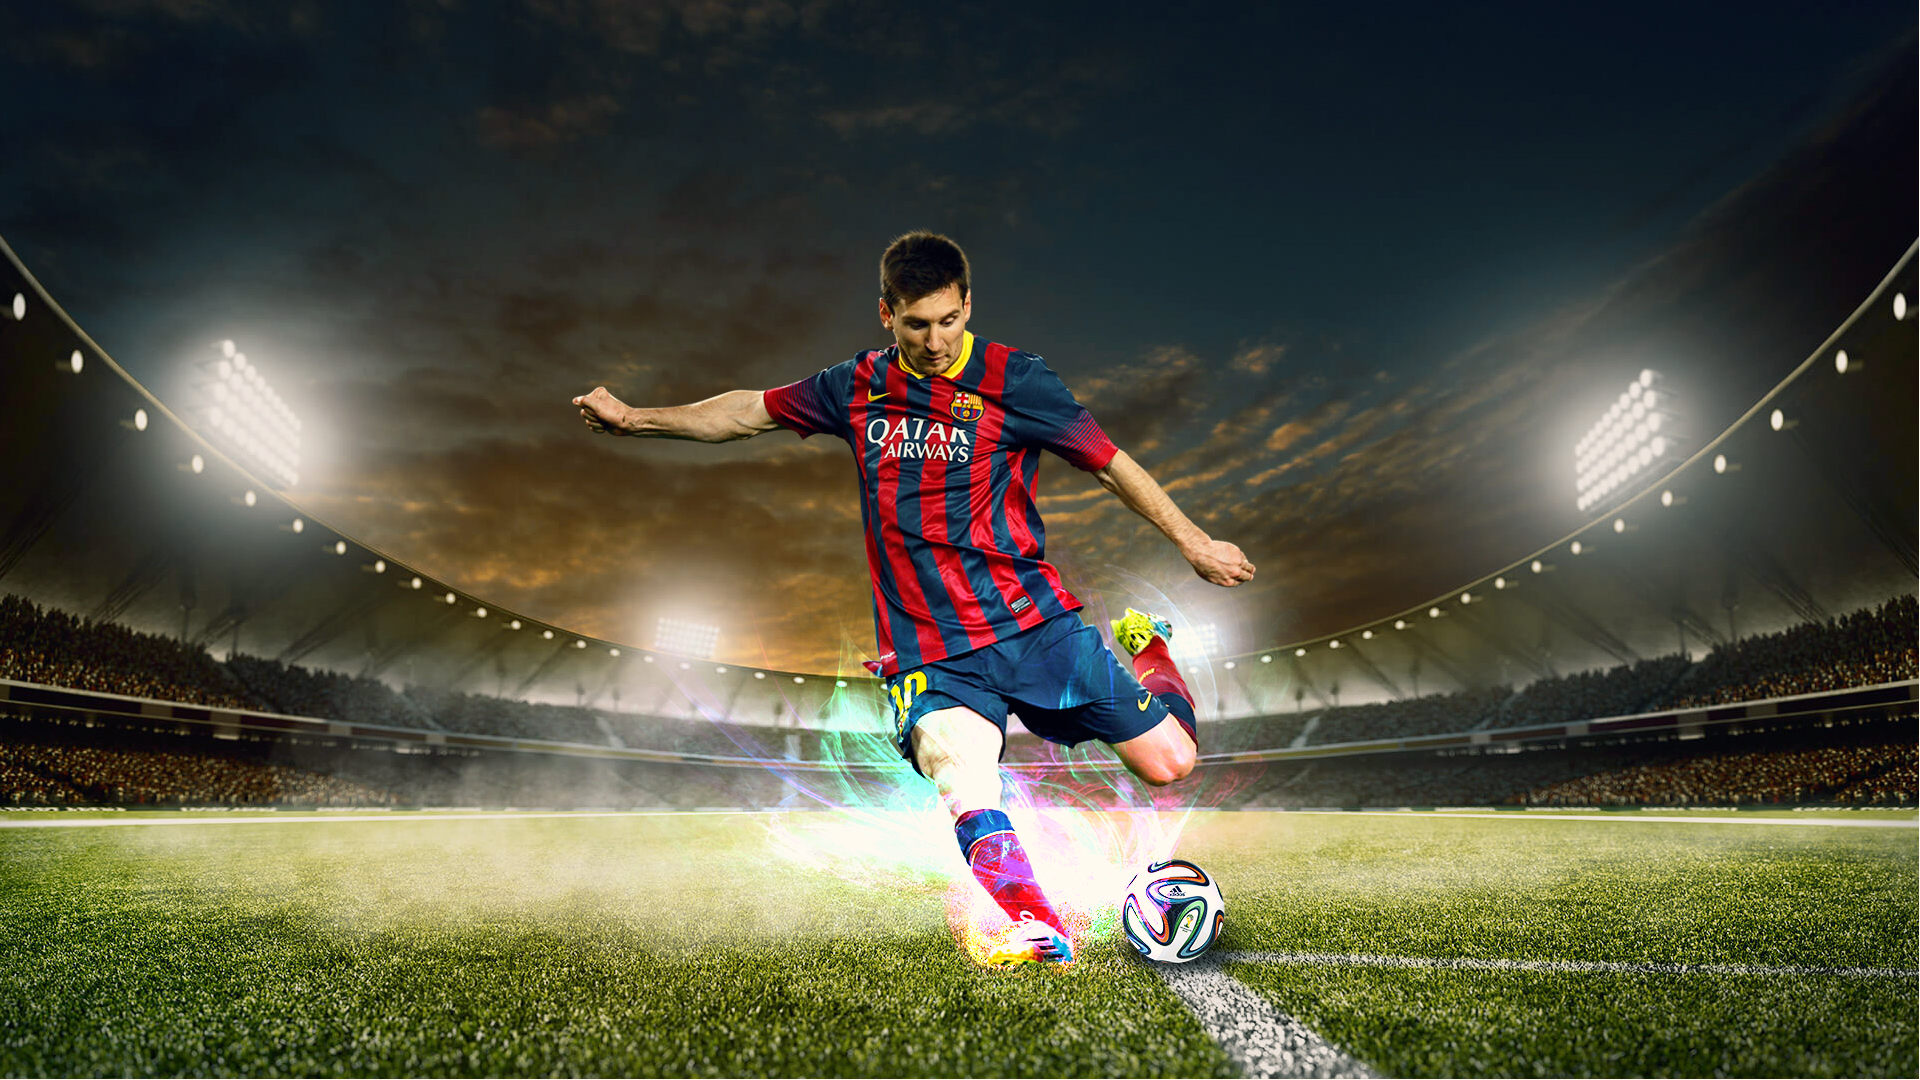 Download Wallpaper Sport Football: Lionel Messi HD Wallpapers